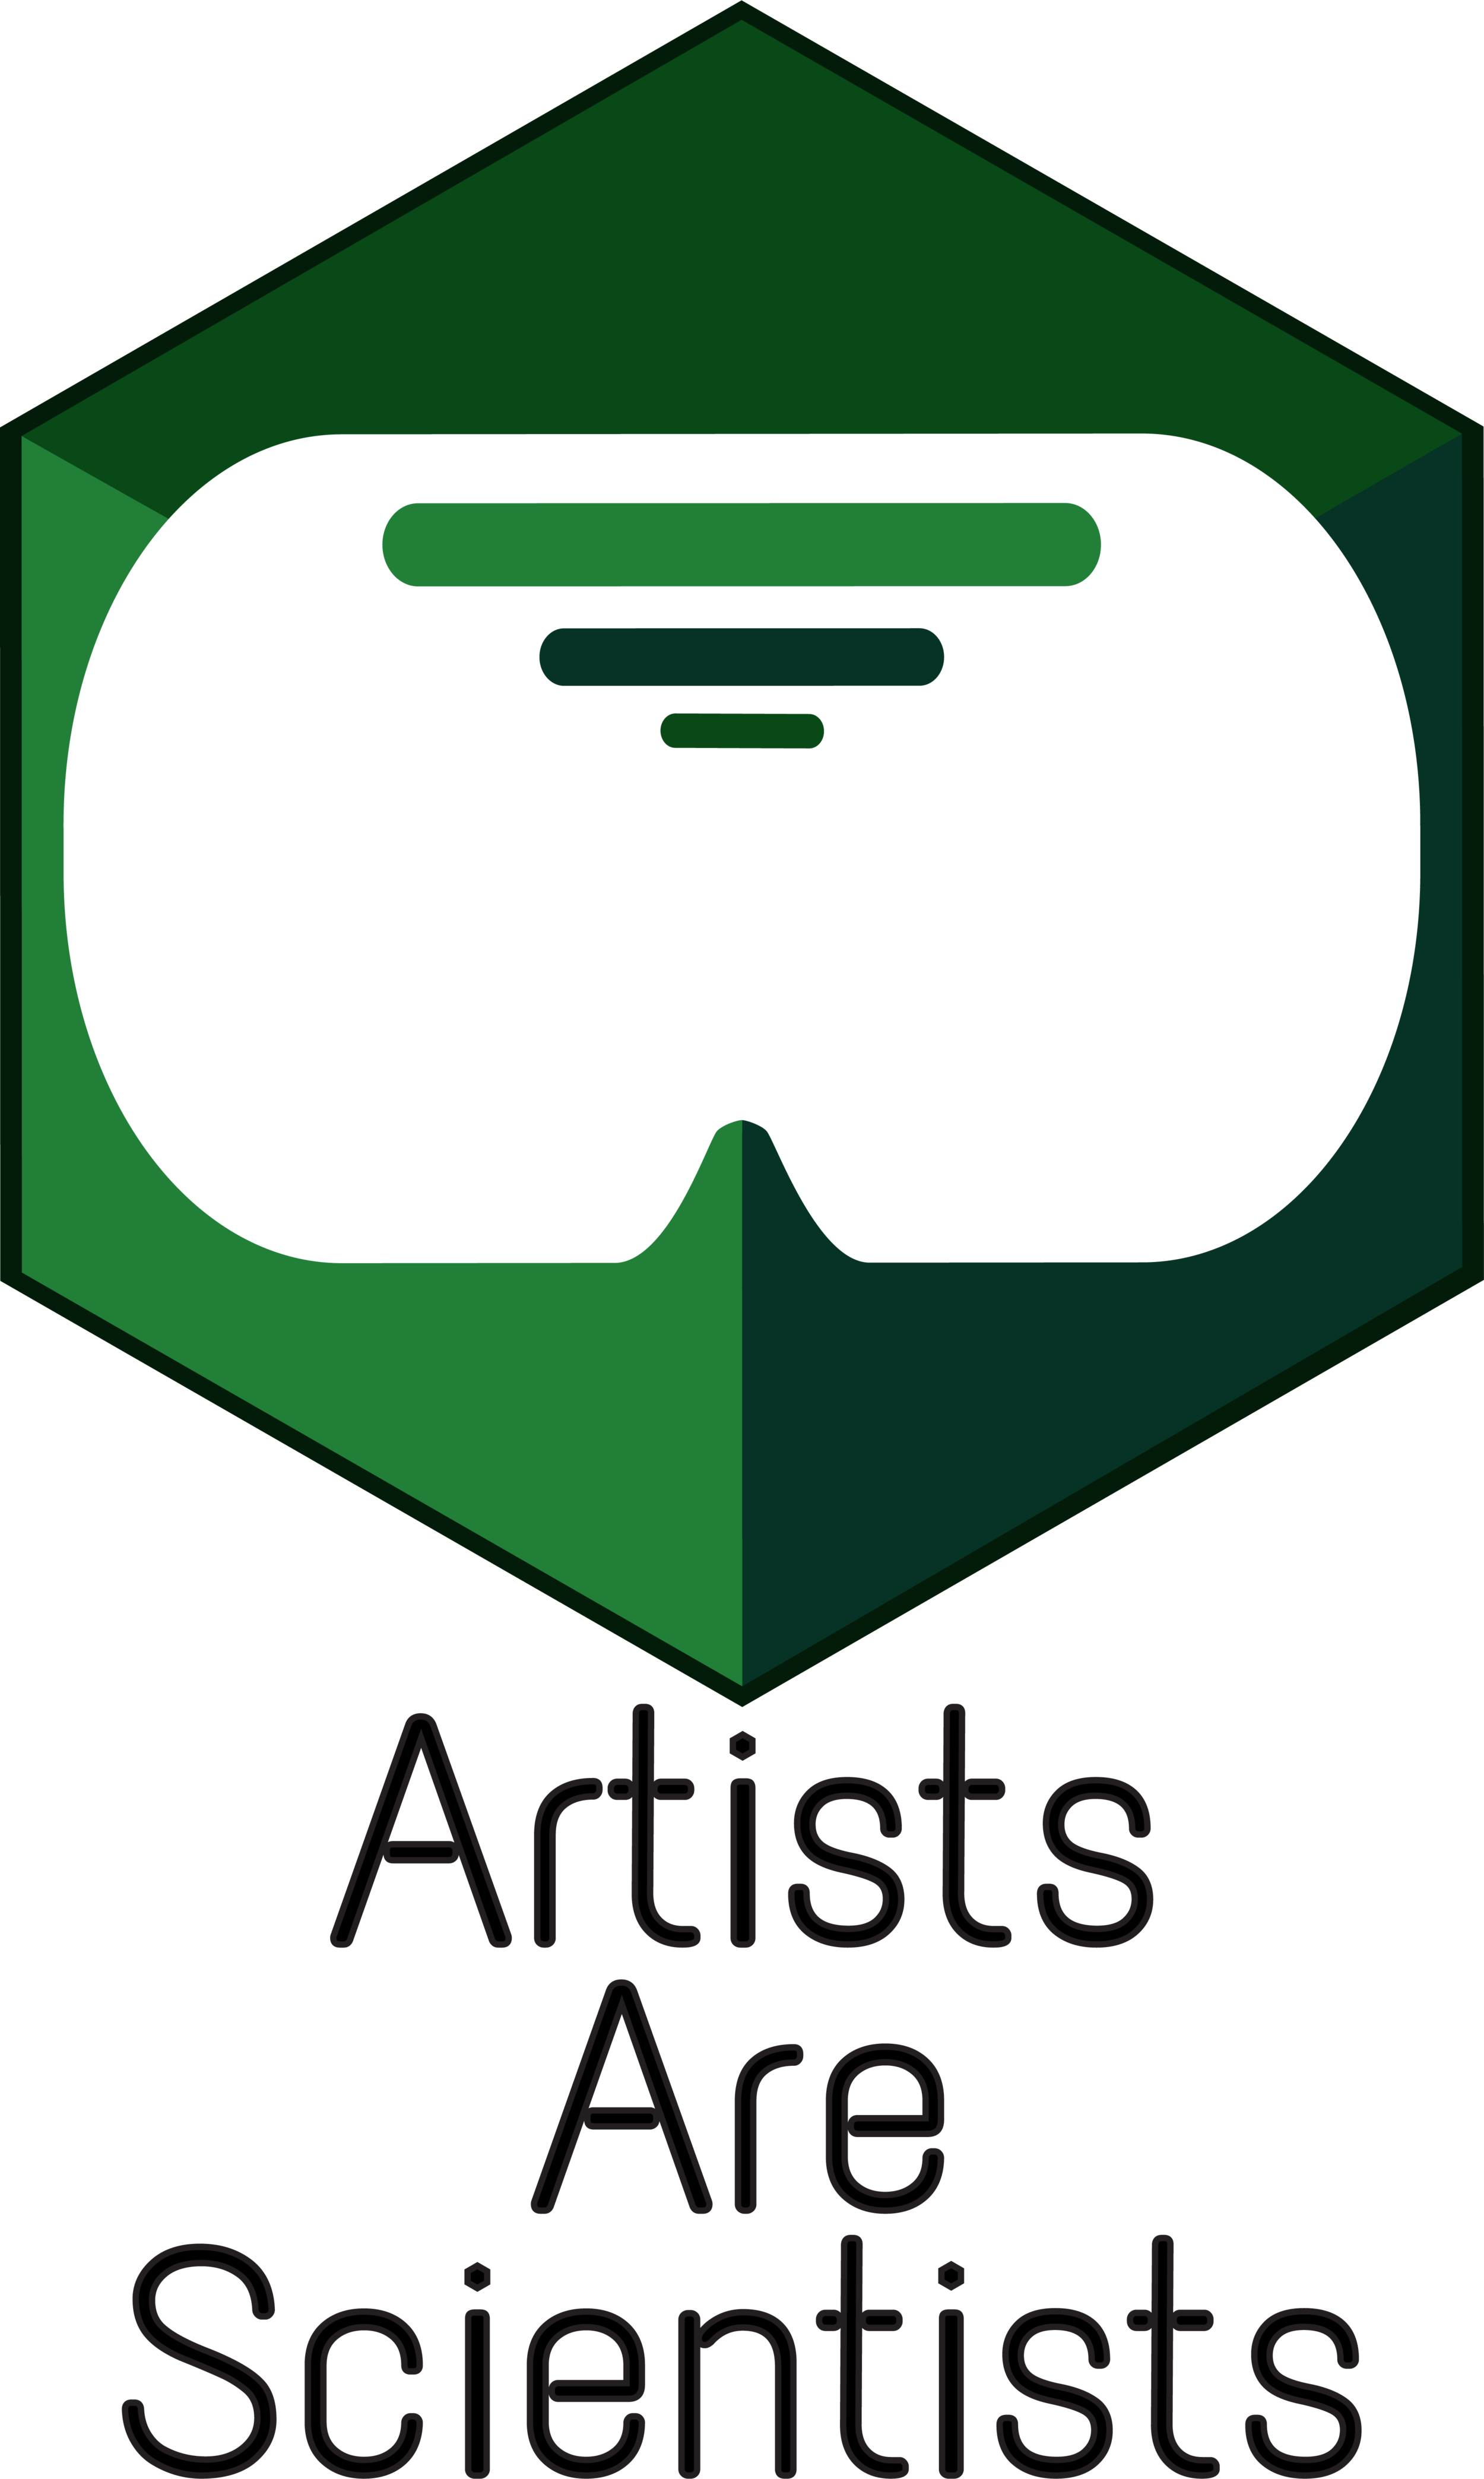 Artists Are Scientists Site Logo Vertical.png